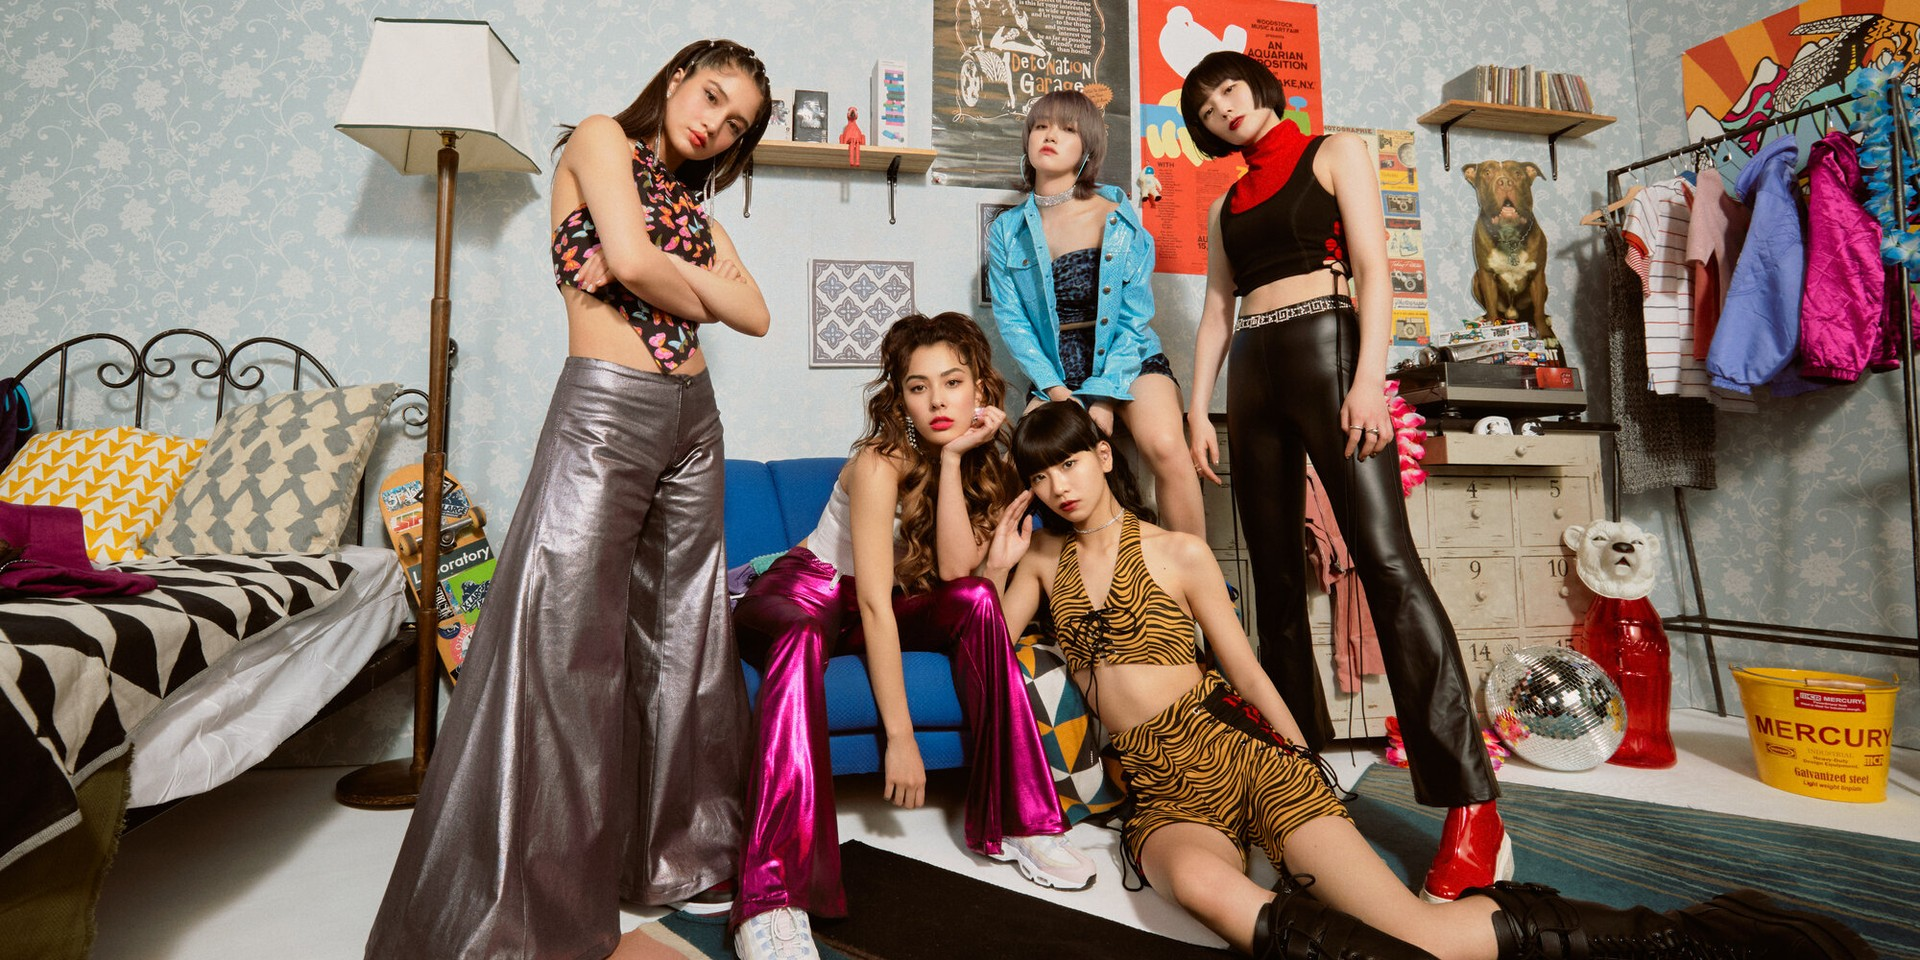 Asia Spotlight: J-pop group FAKY get real with their genre-bending music